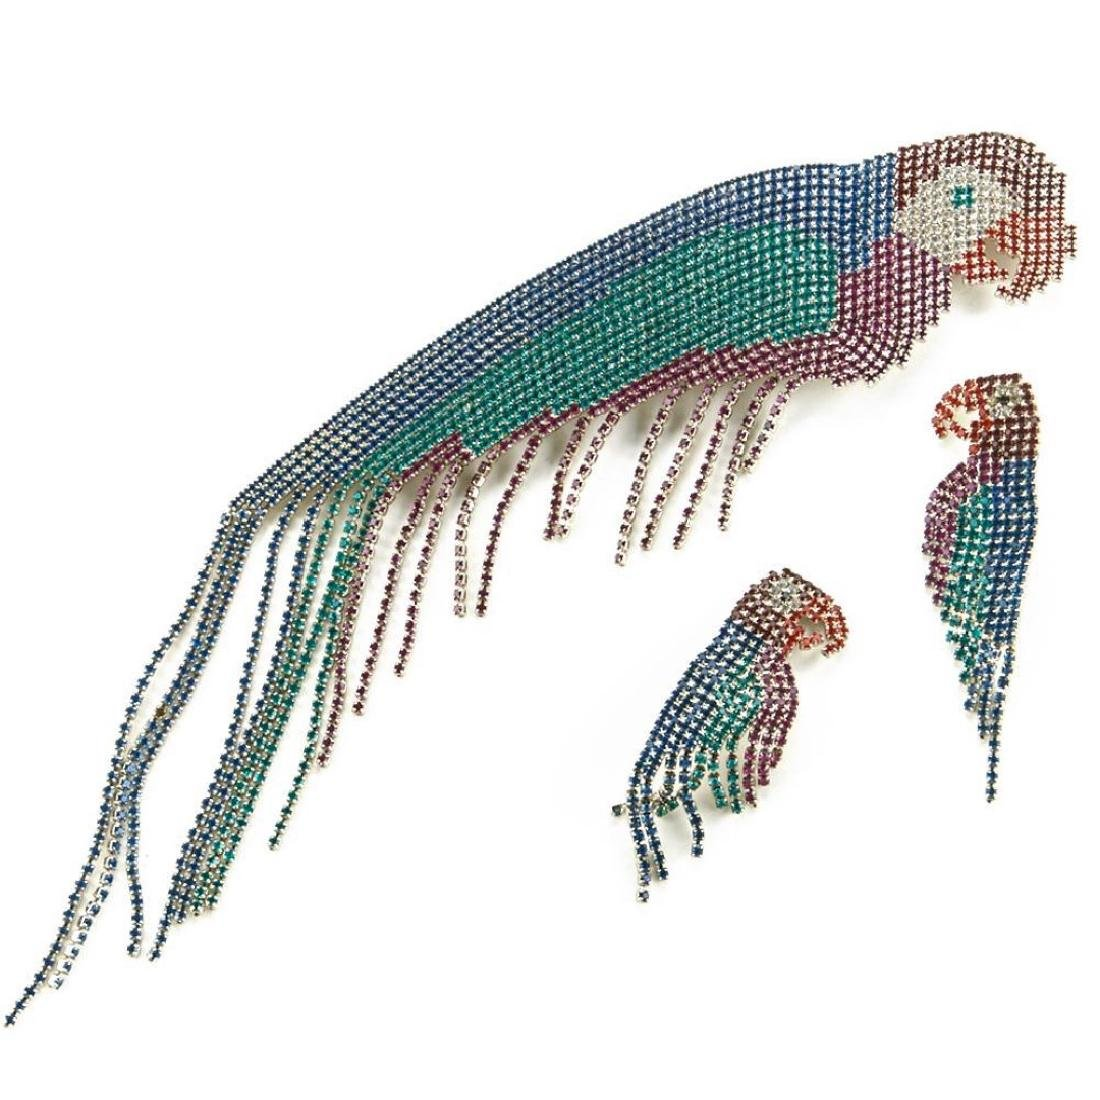 Bauer rhinestone parrot brooch and earring set